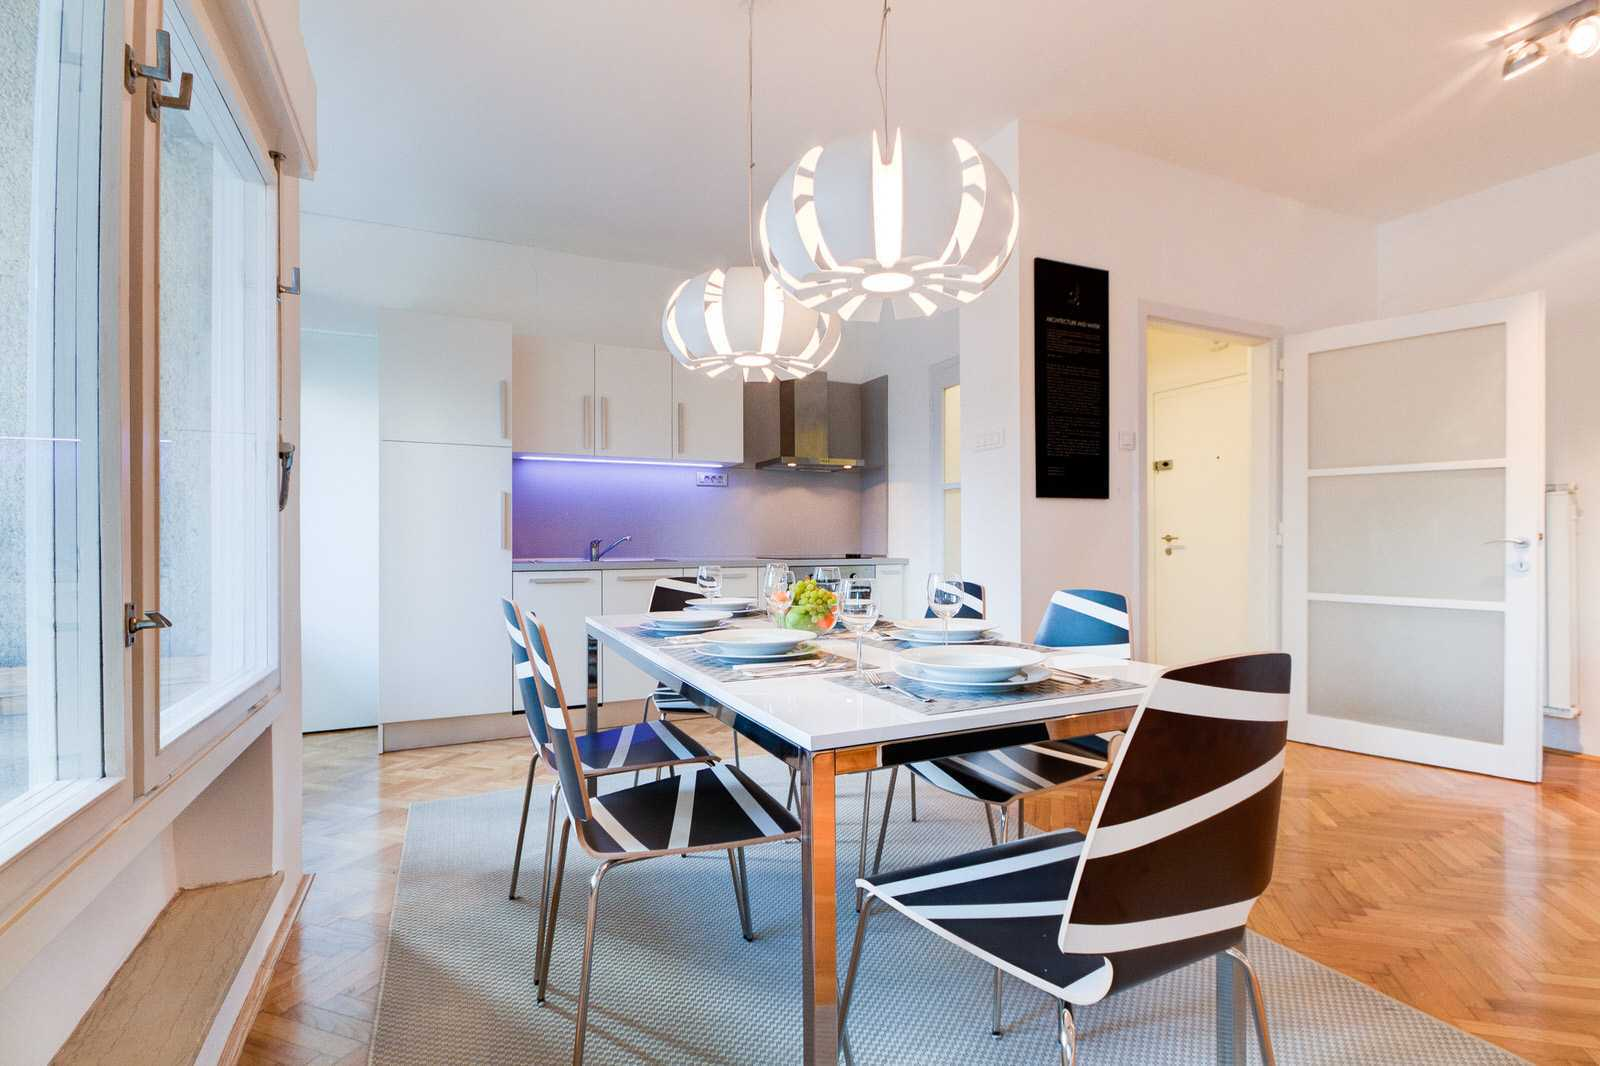 Dining table for 6 with modern pending lights and a fully stocked kitchen.